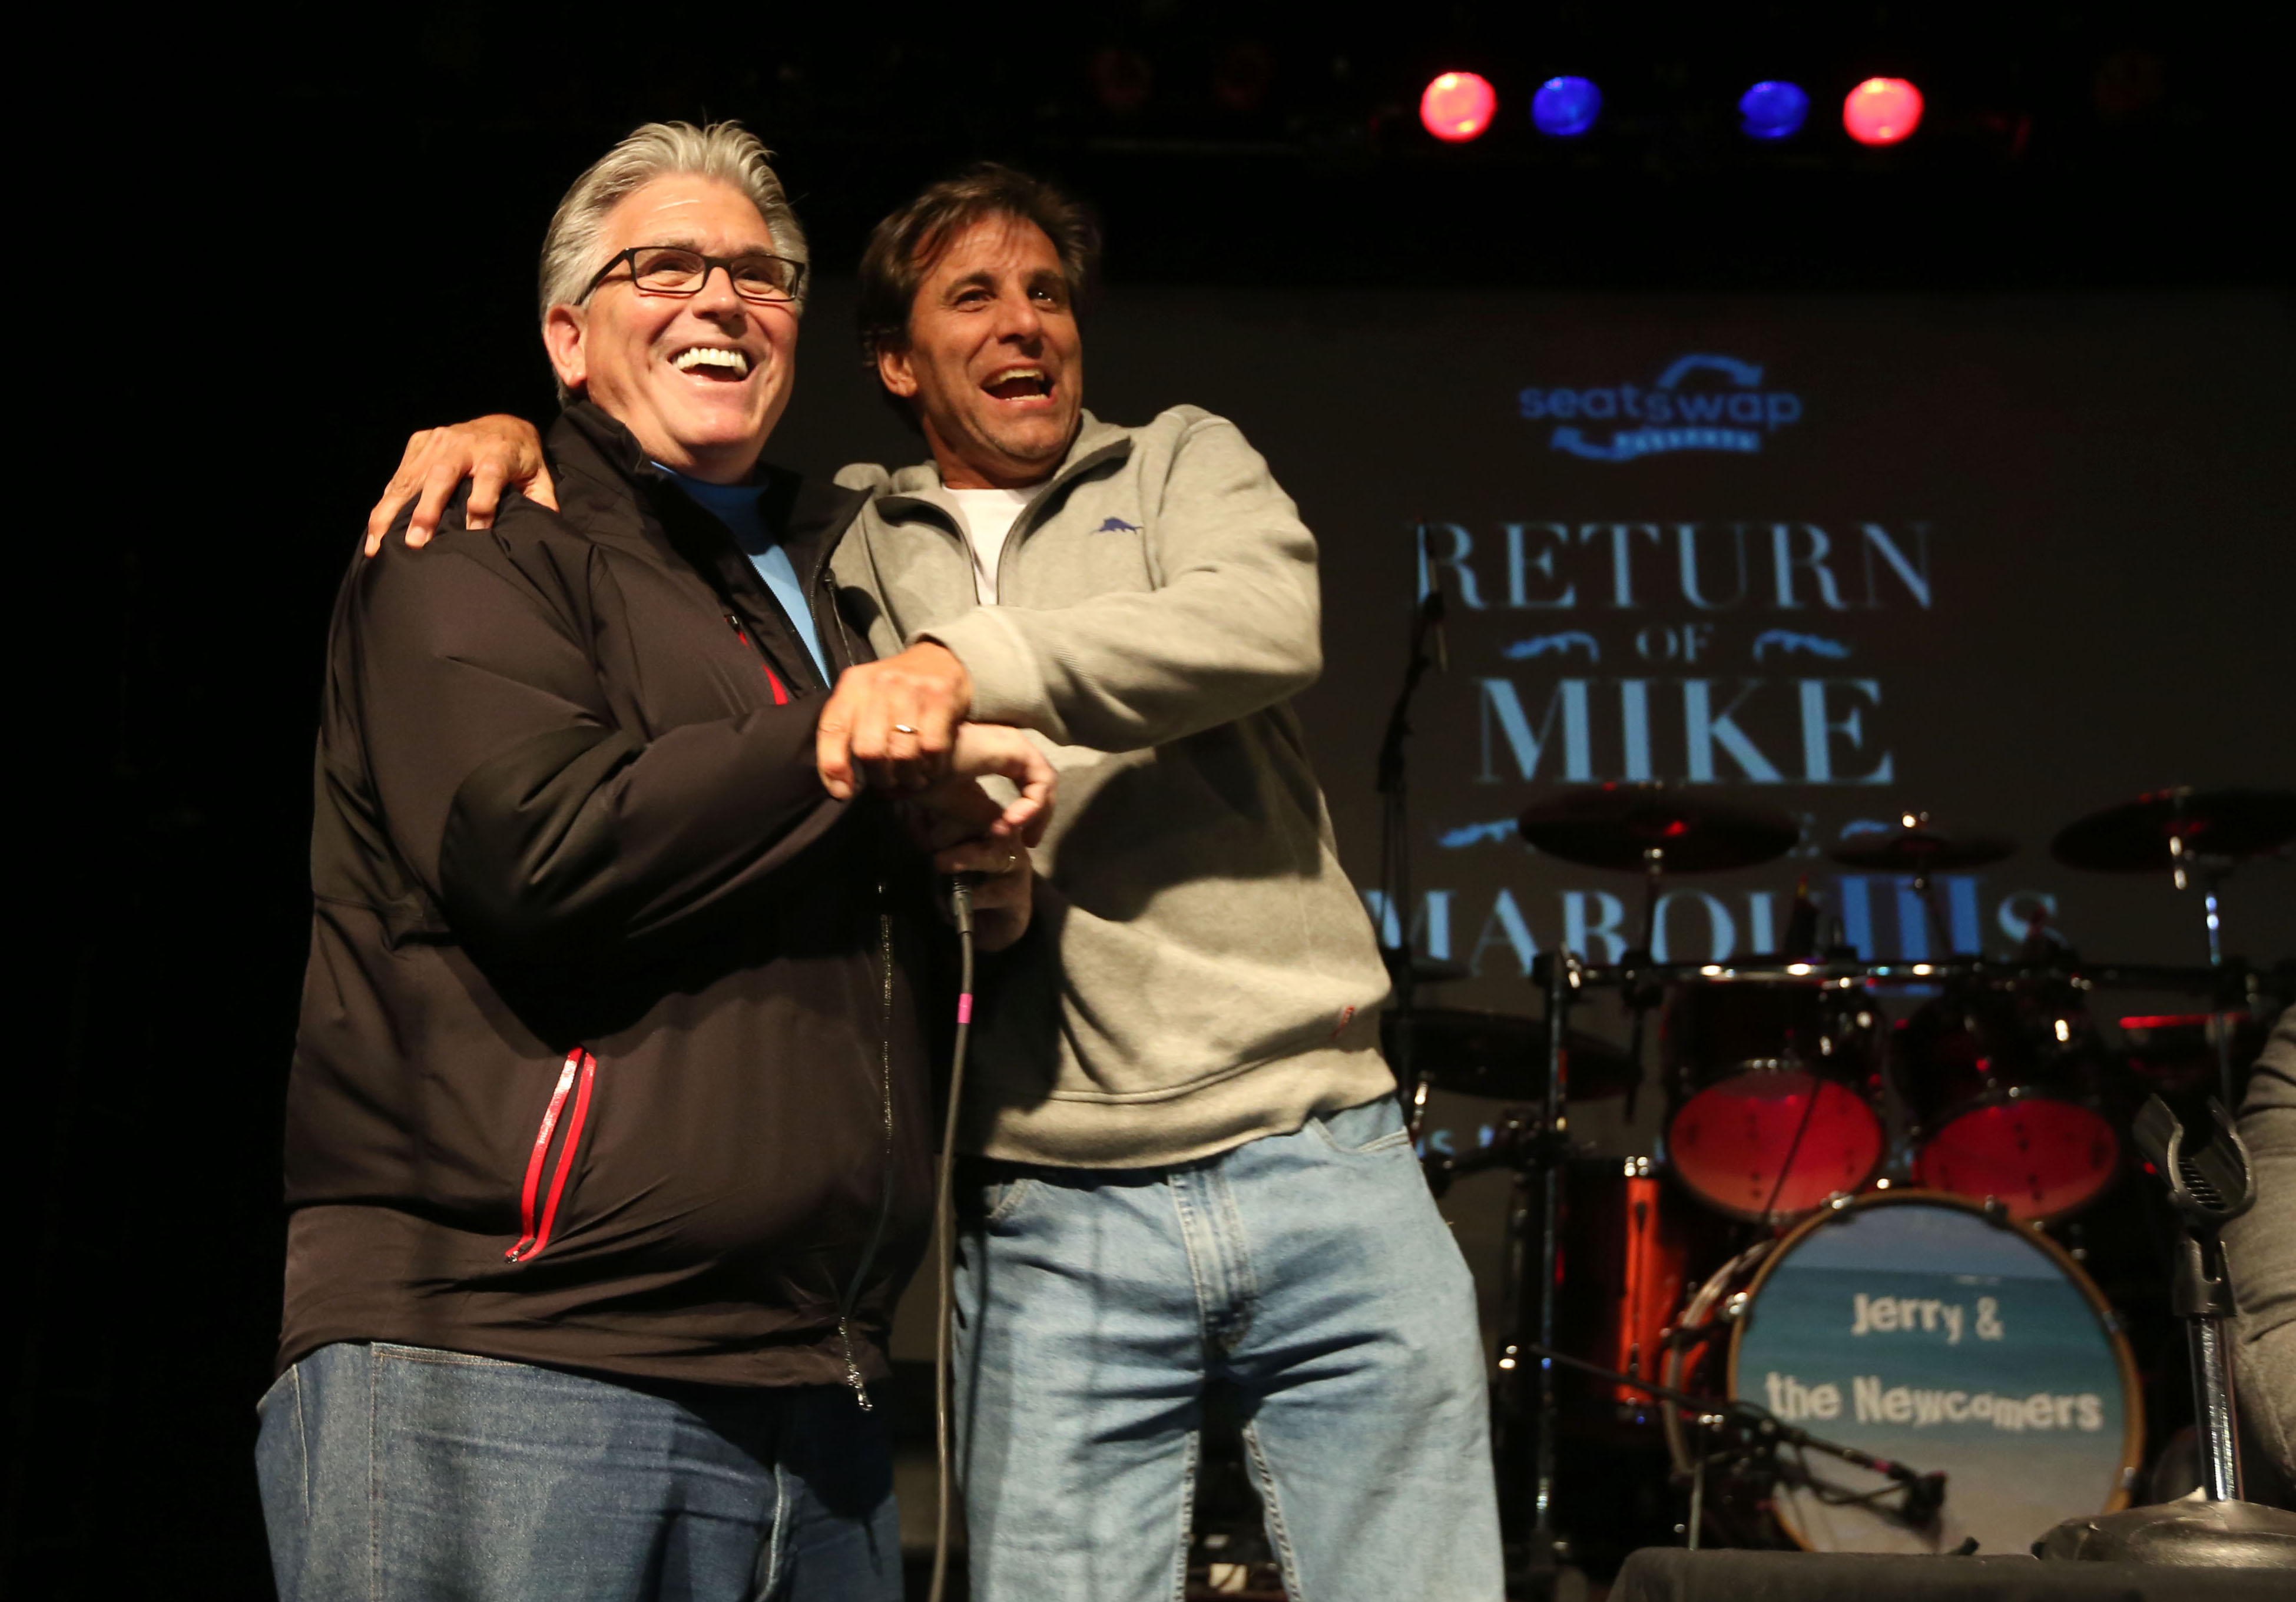 Christopher 'Mad Dog' Russo dishes on relationship with WFAN's Mike Francesa: 'A little disharmony'